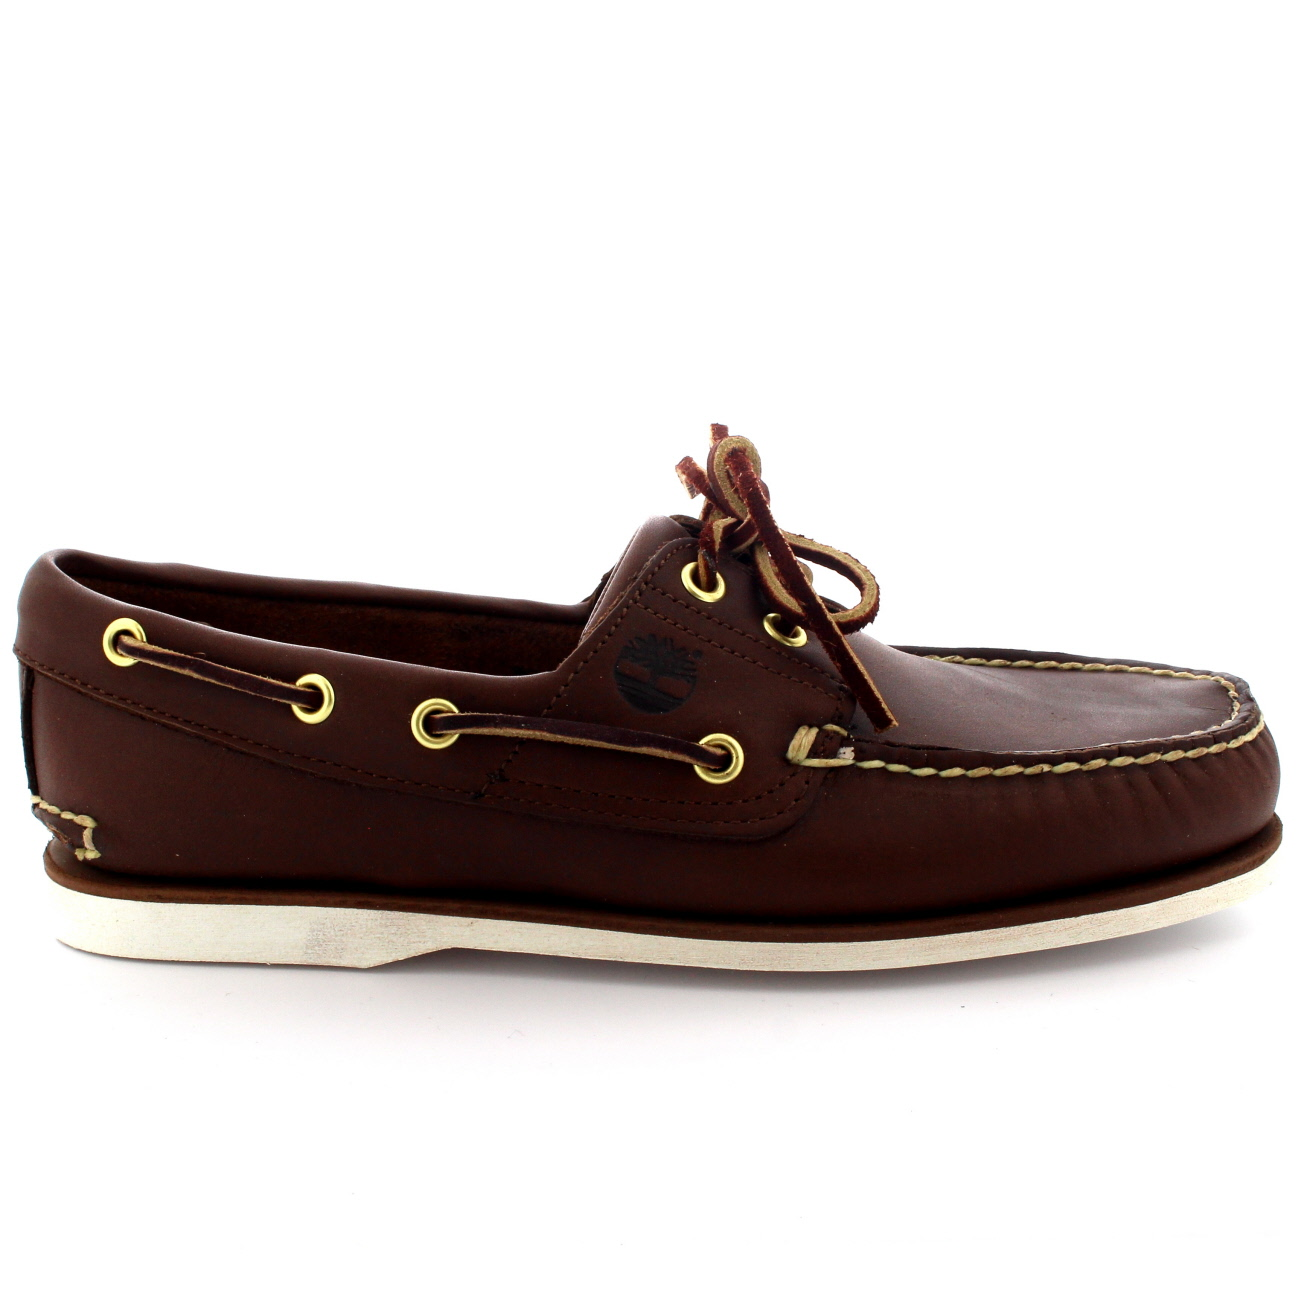 61bbdaee6e9 Mens Timberland Classic 2 Eye Boat Loafers Moccasin Lace Up Deck Shoes All  Sizes